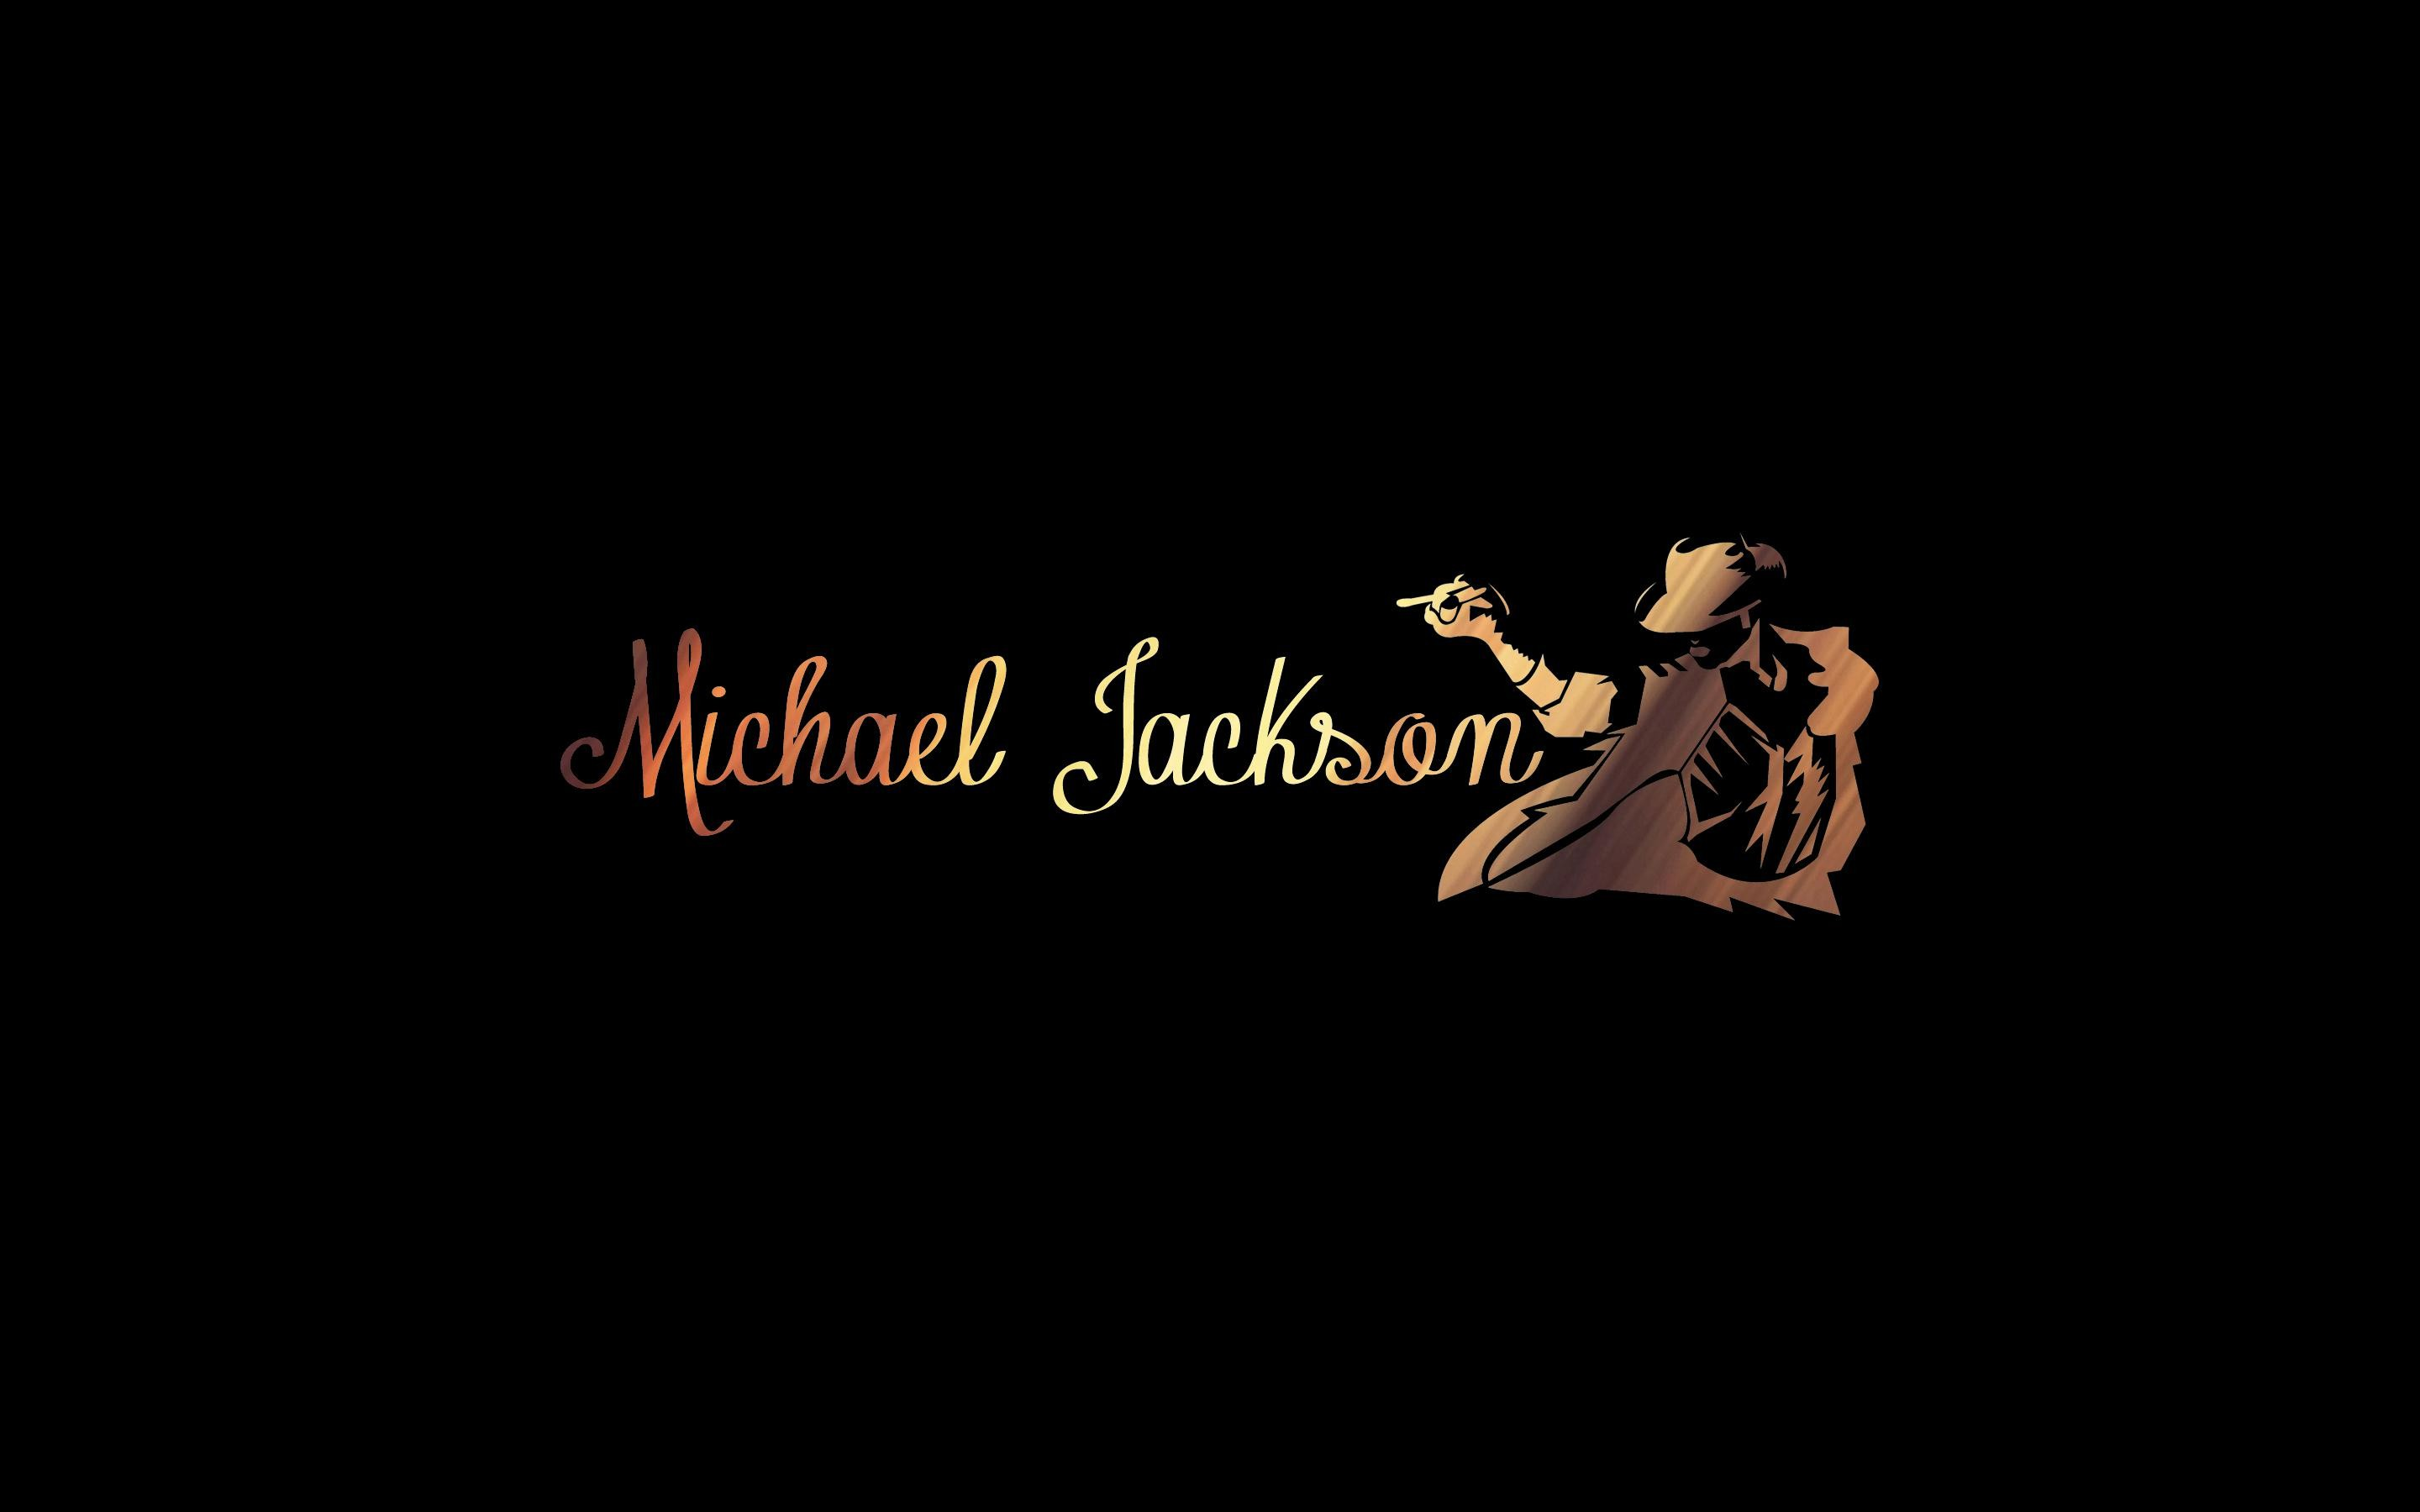 Michael Jackson Wallpaper For Computer (77+ Pictures